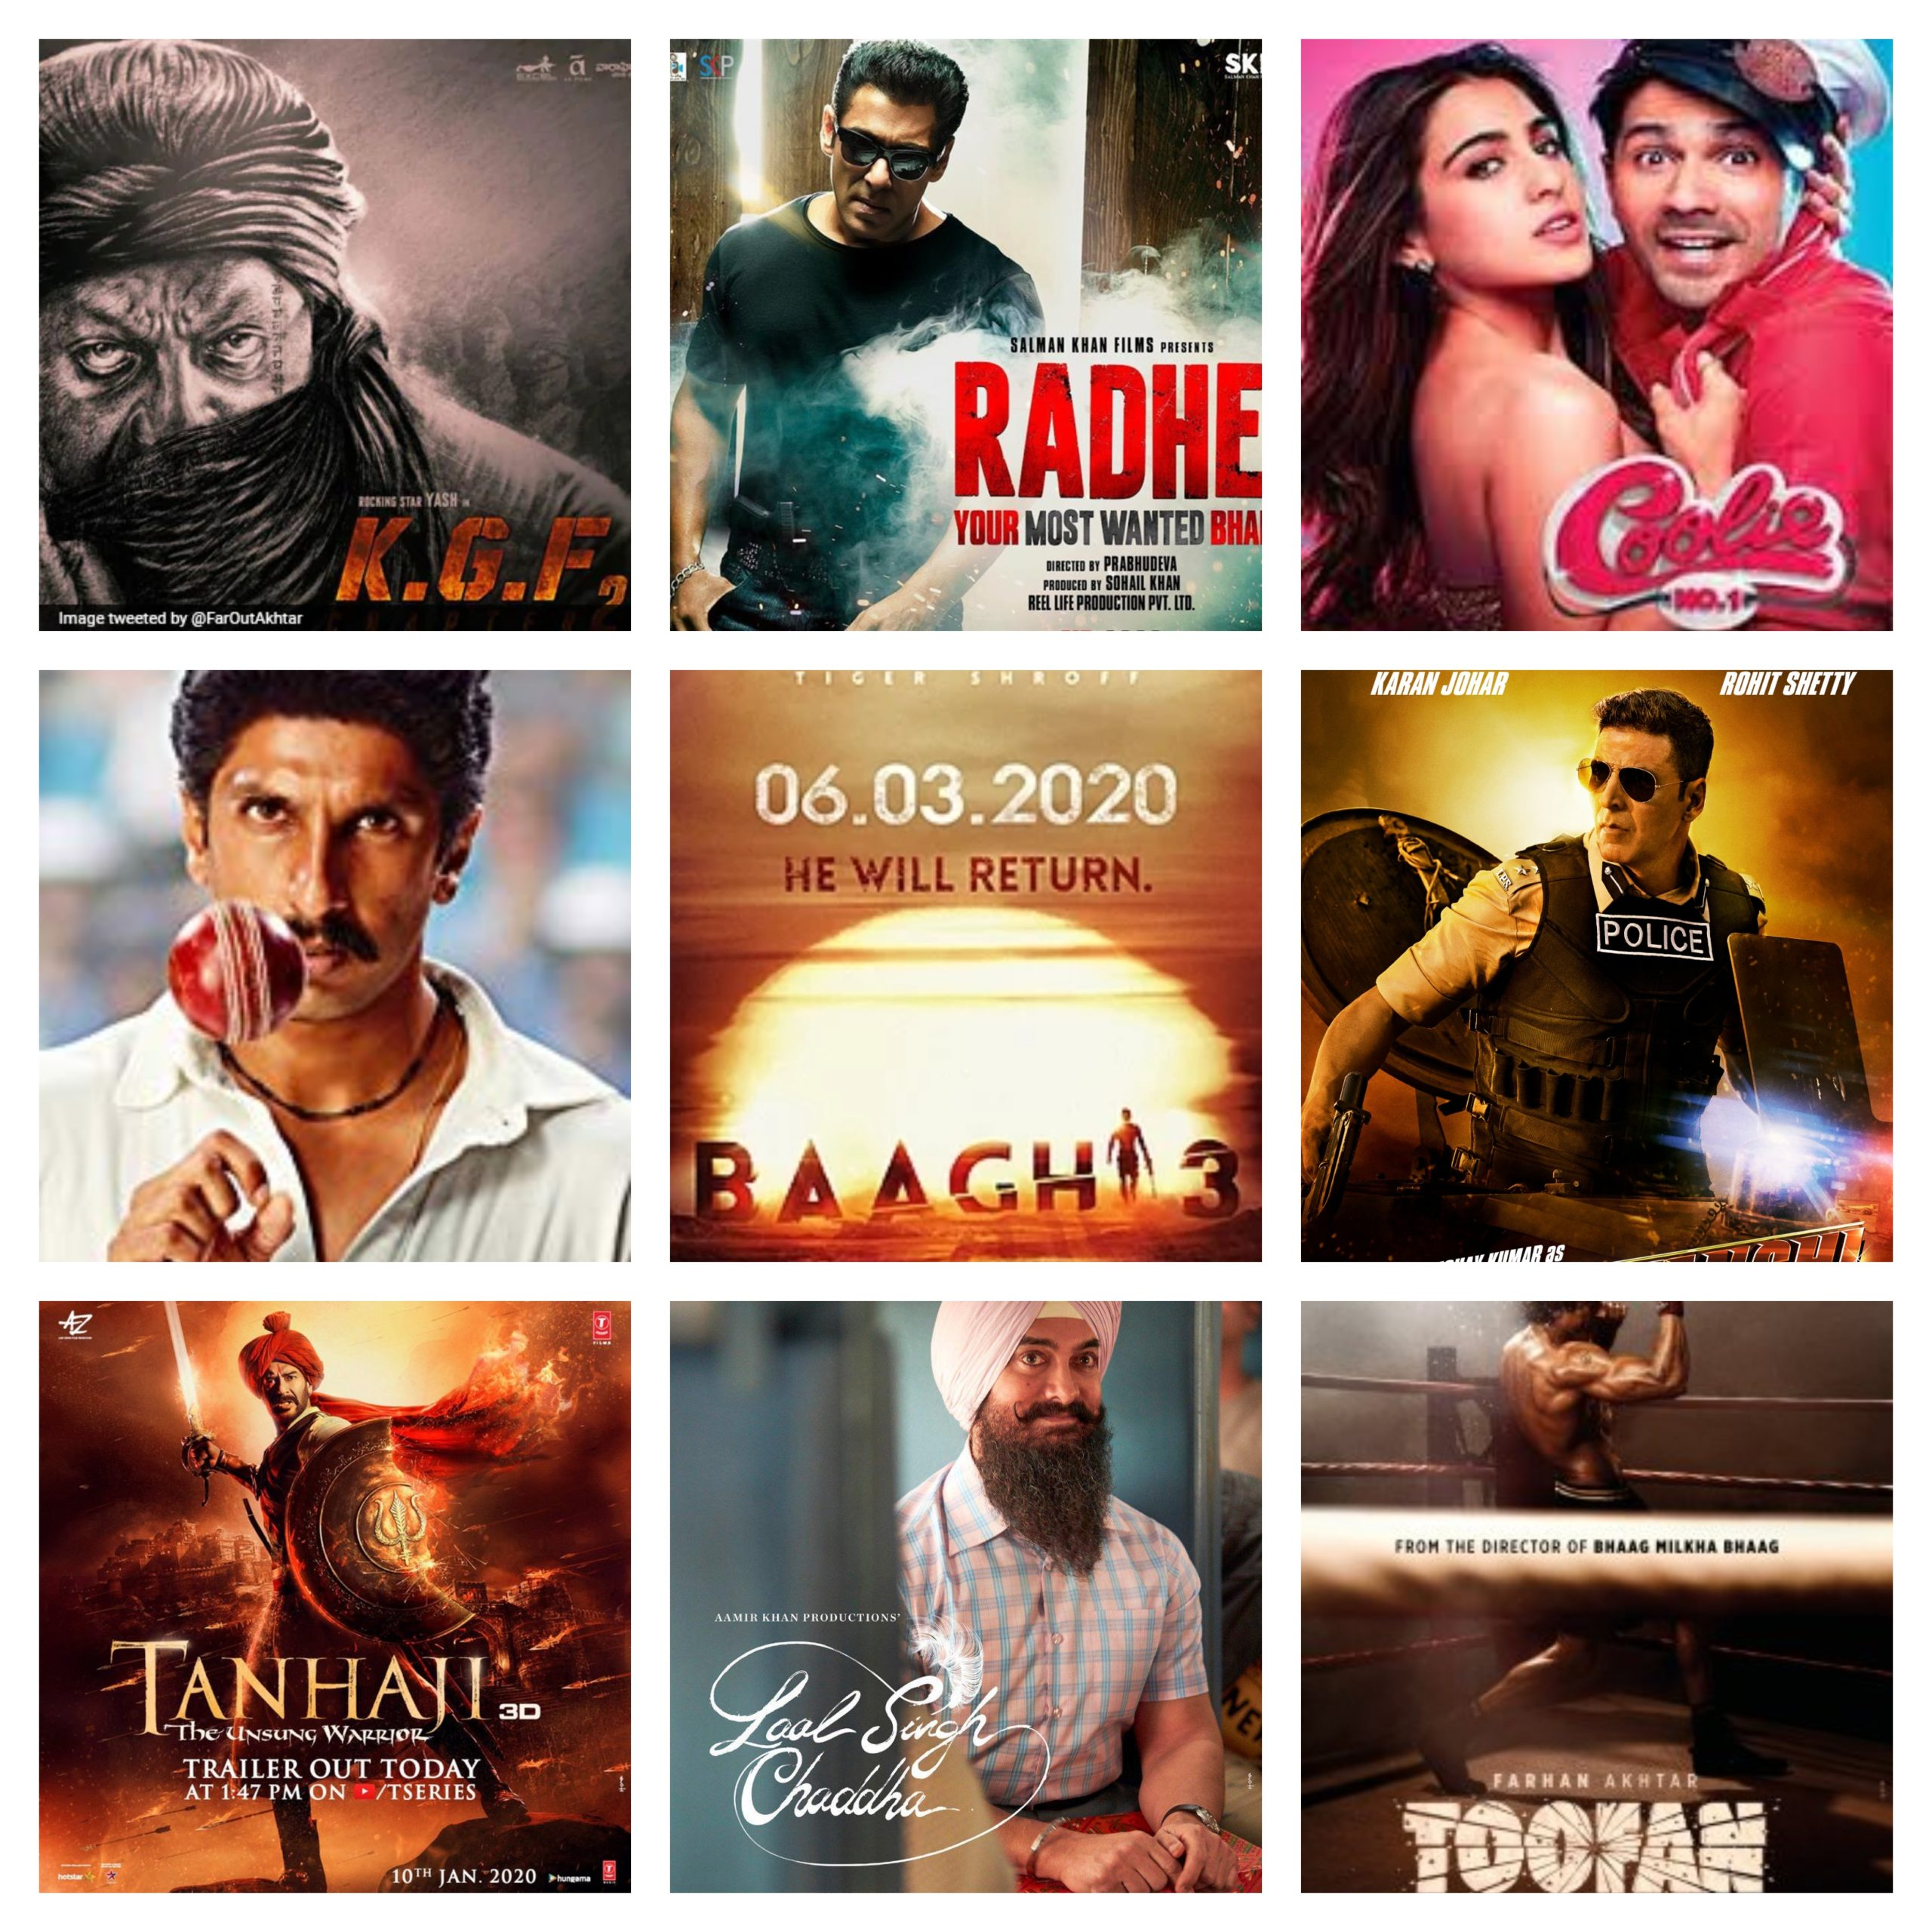 Hubflix 2020 Website Bollywood New Hd Movies Download Is It Legal Telegraph Star